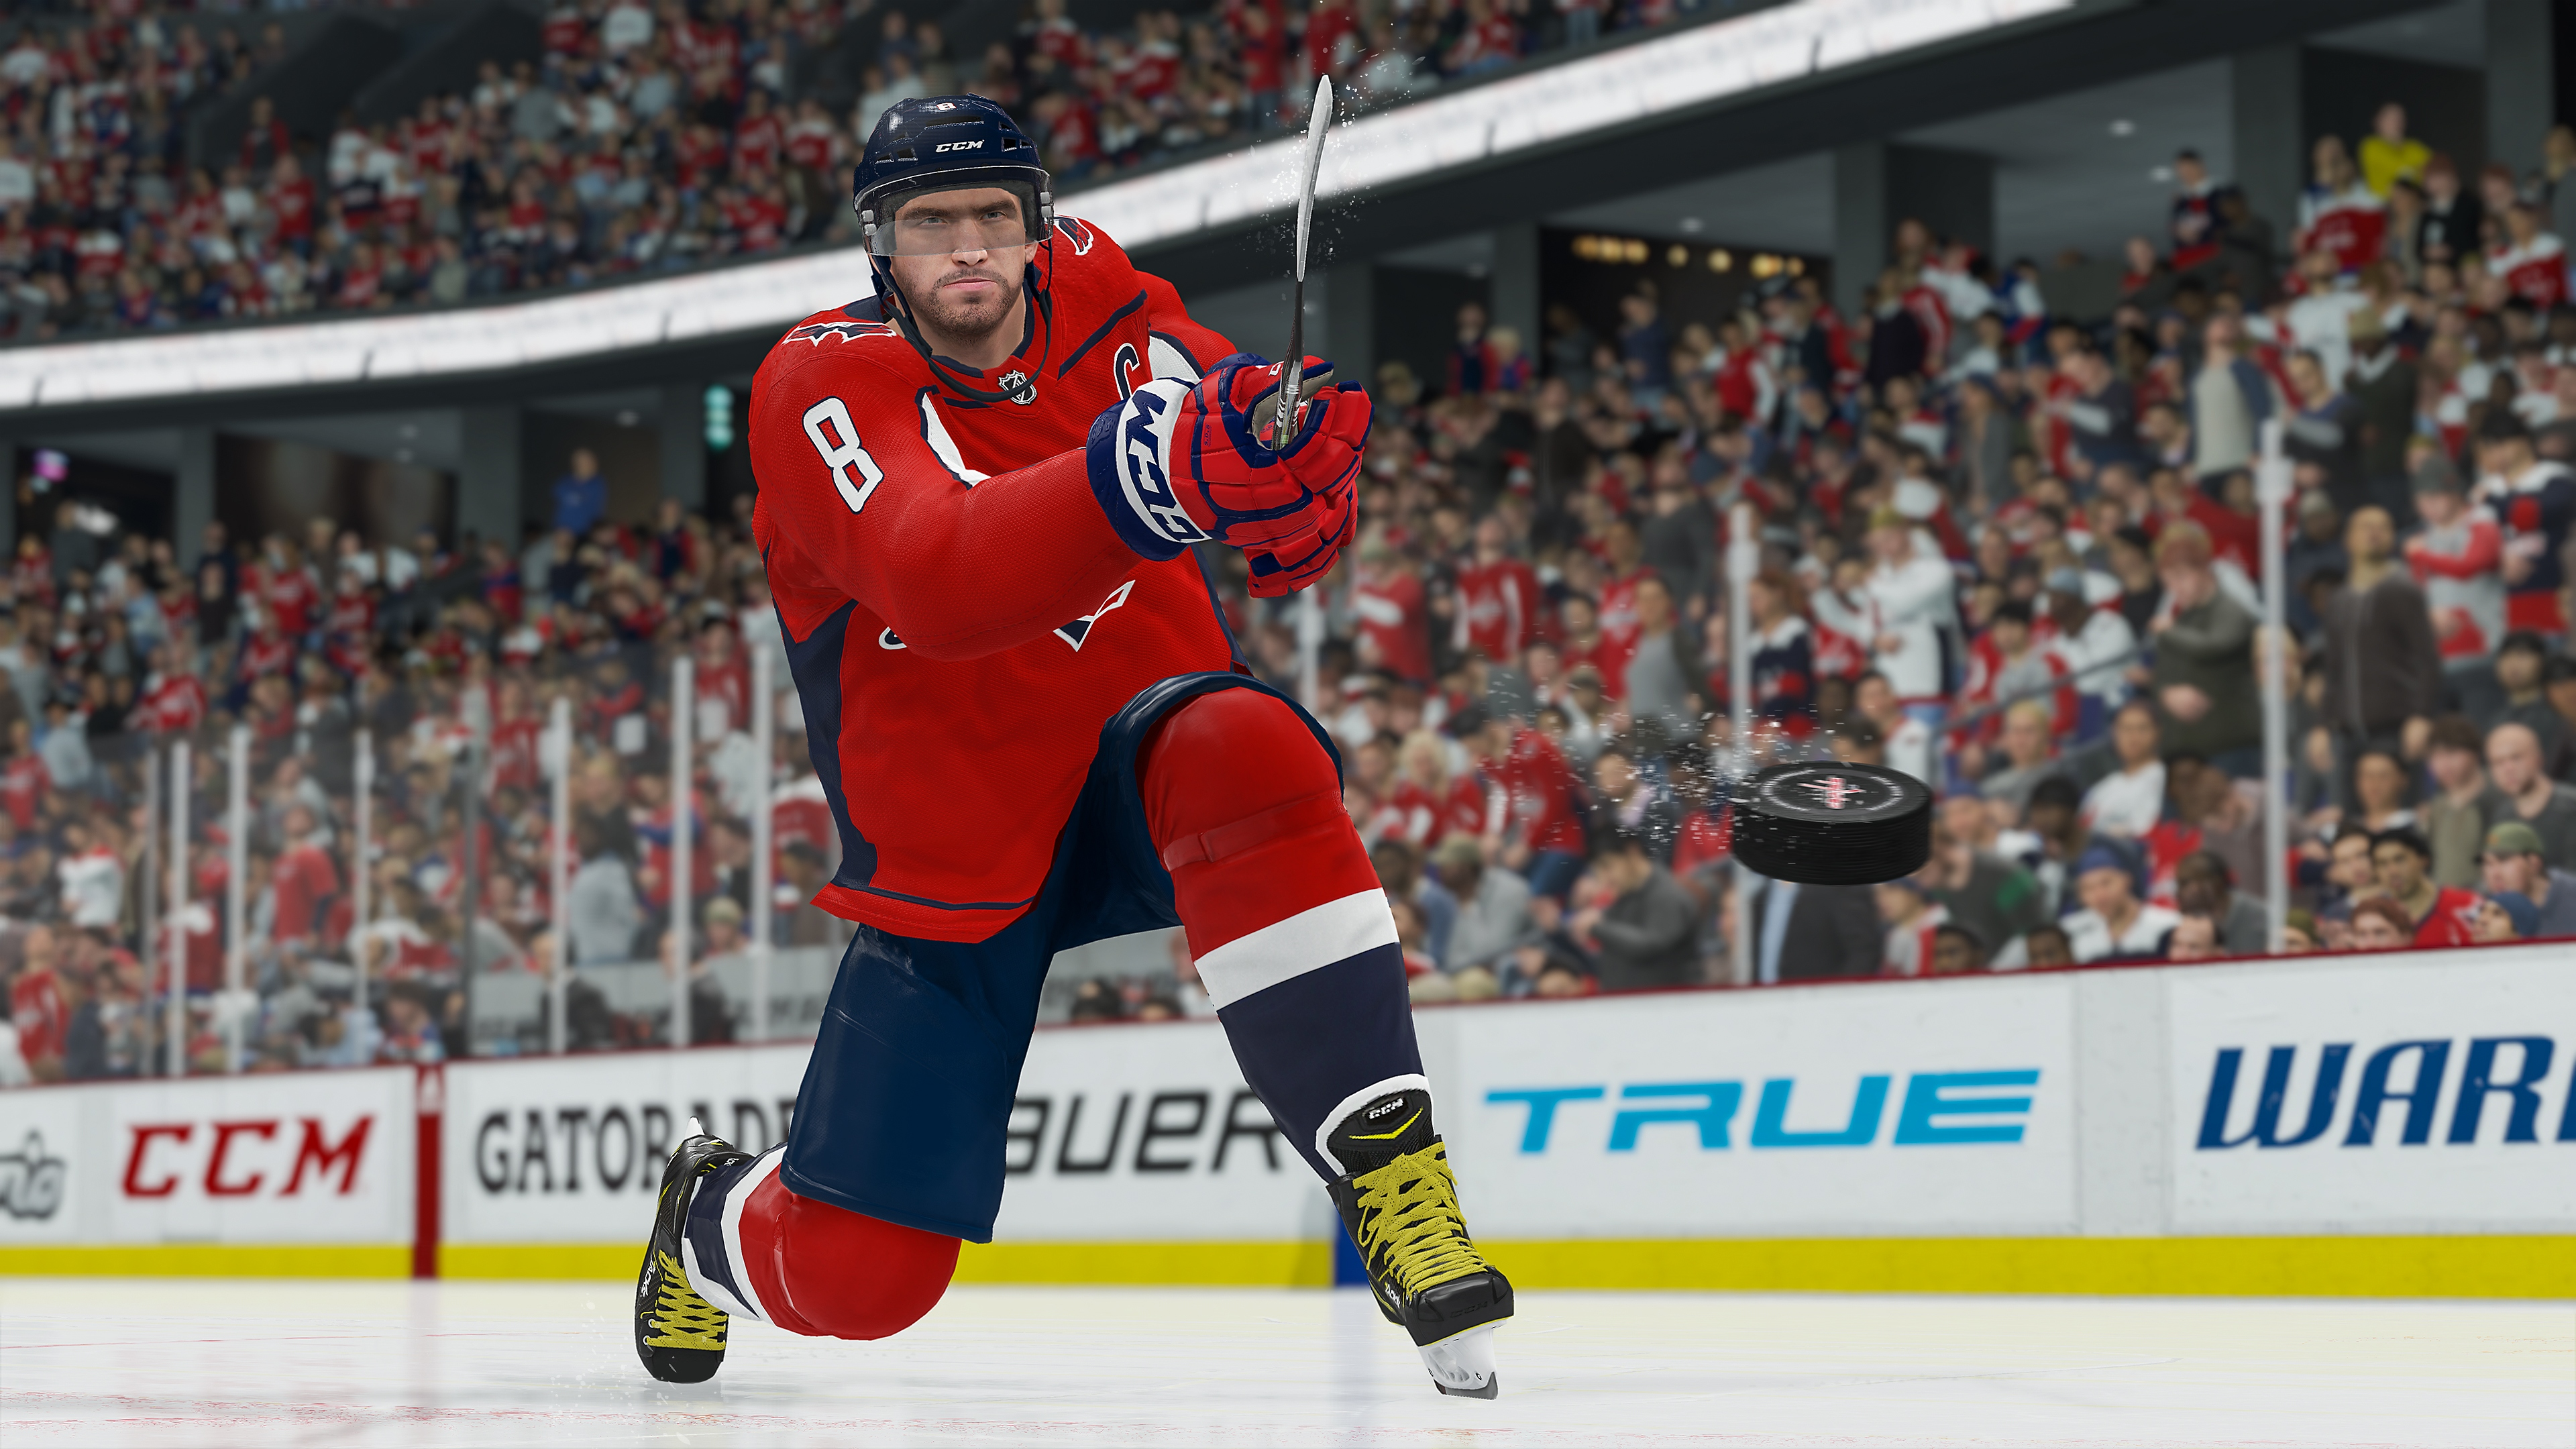 EA SPORTS NHL 21 - Captura de pantalla 5 de la galería